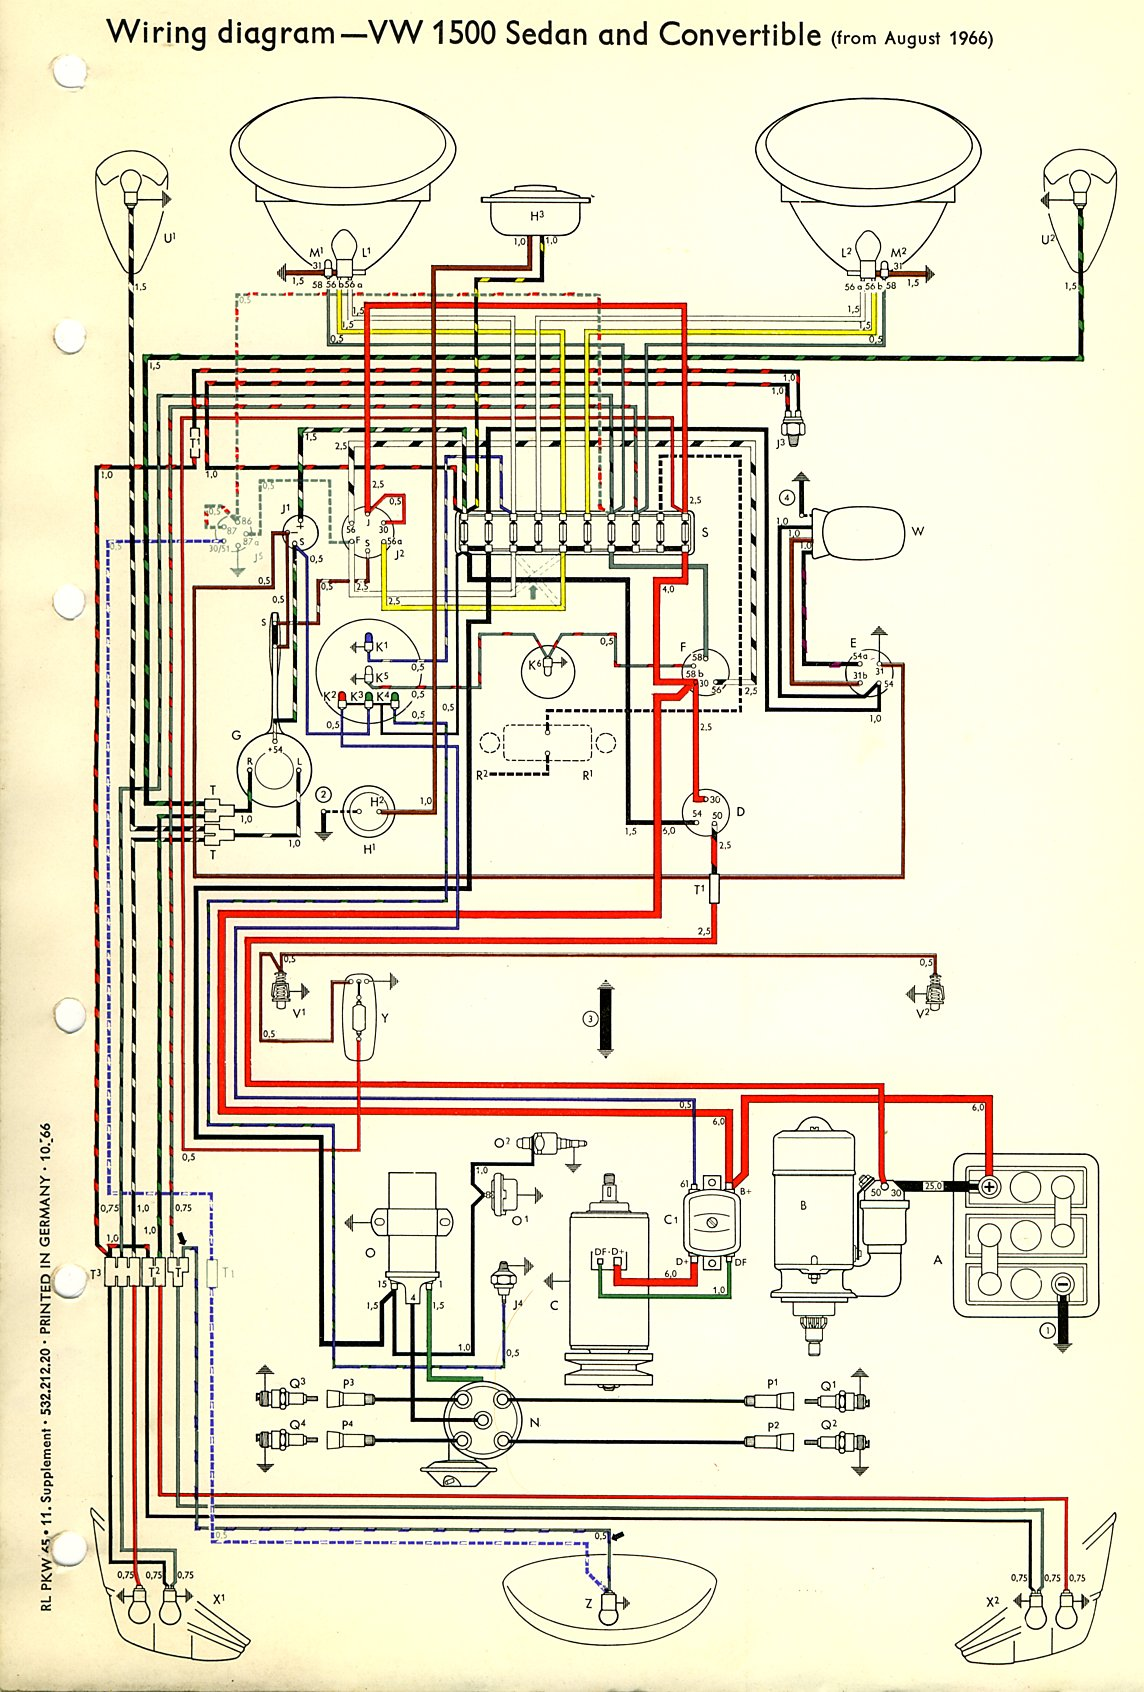 hight resolution of 1973 vw beetle wiring diagram wiring diagram sheet 1973 vw beetle headlight switch wiring diagram 1973 vw bug headlight wire diagram